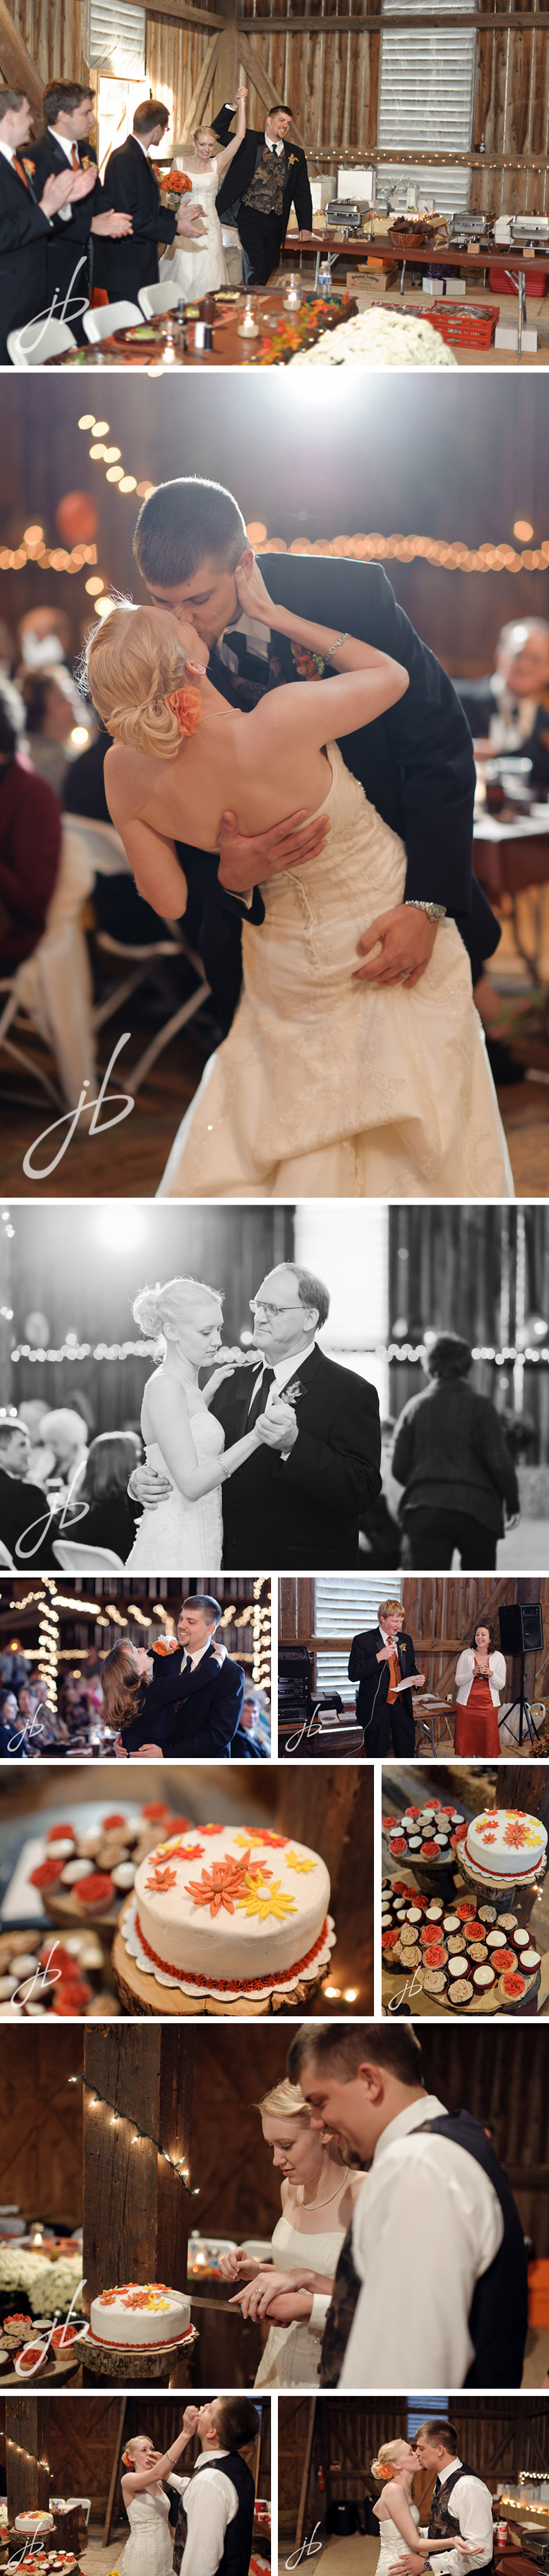 Central PA wedding photography by Jeremy Bischoff Photography